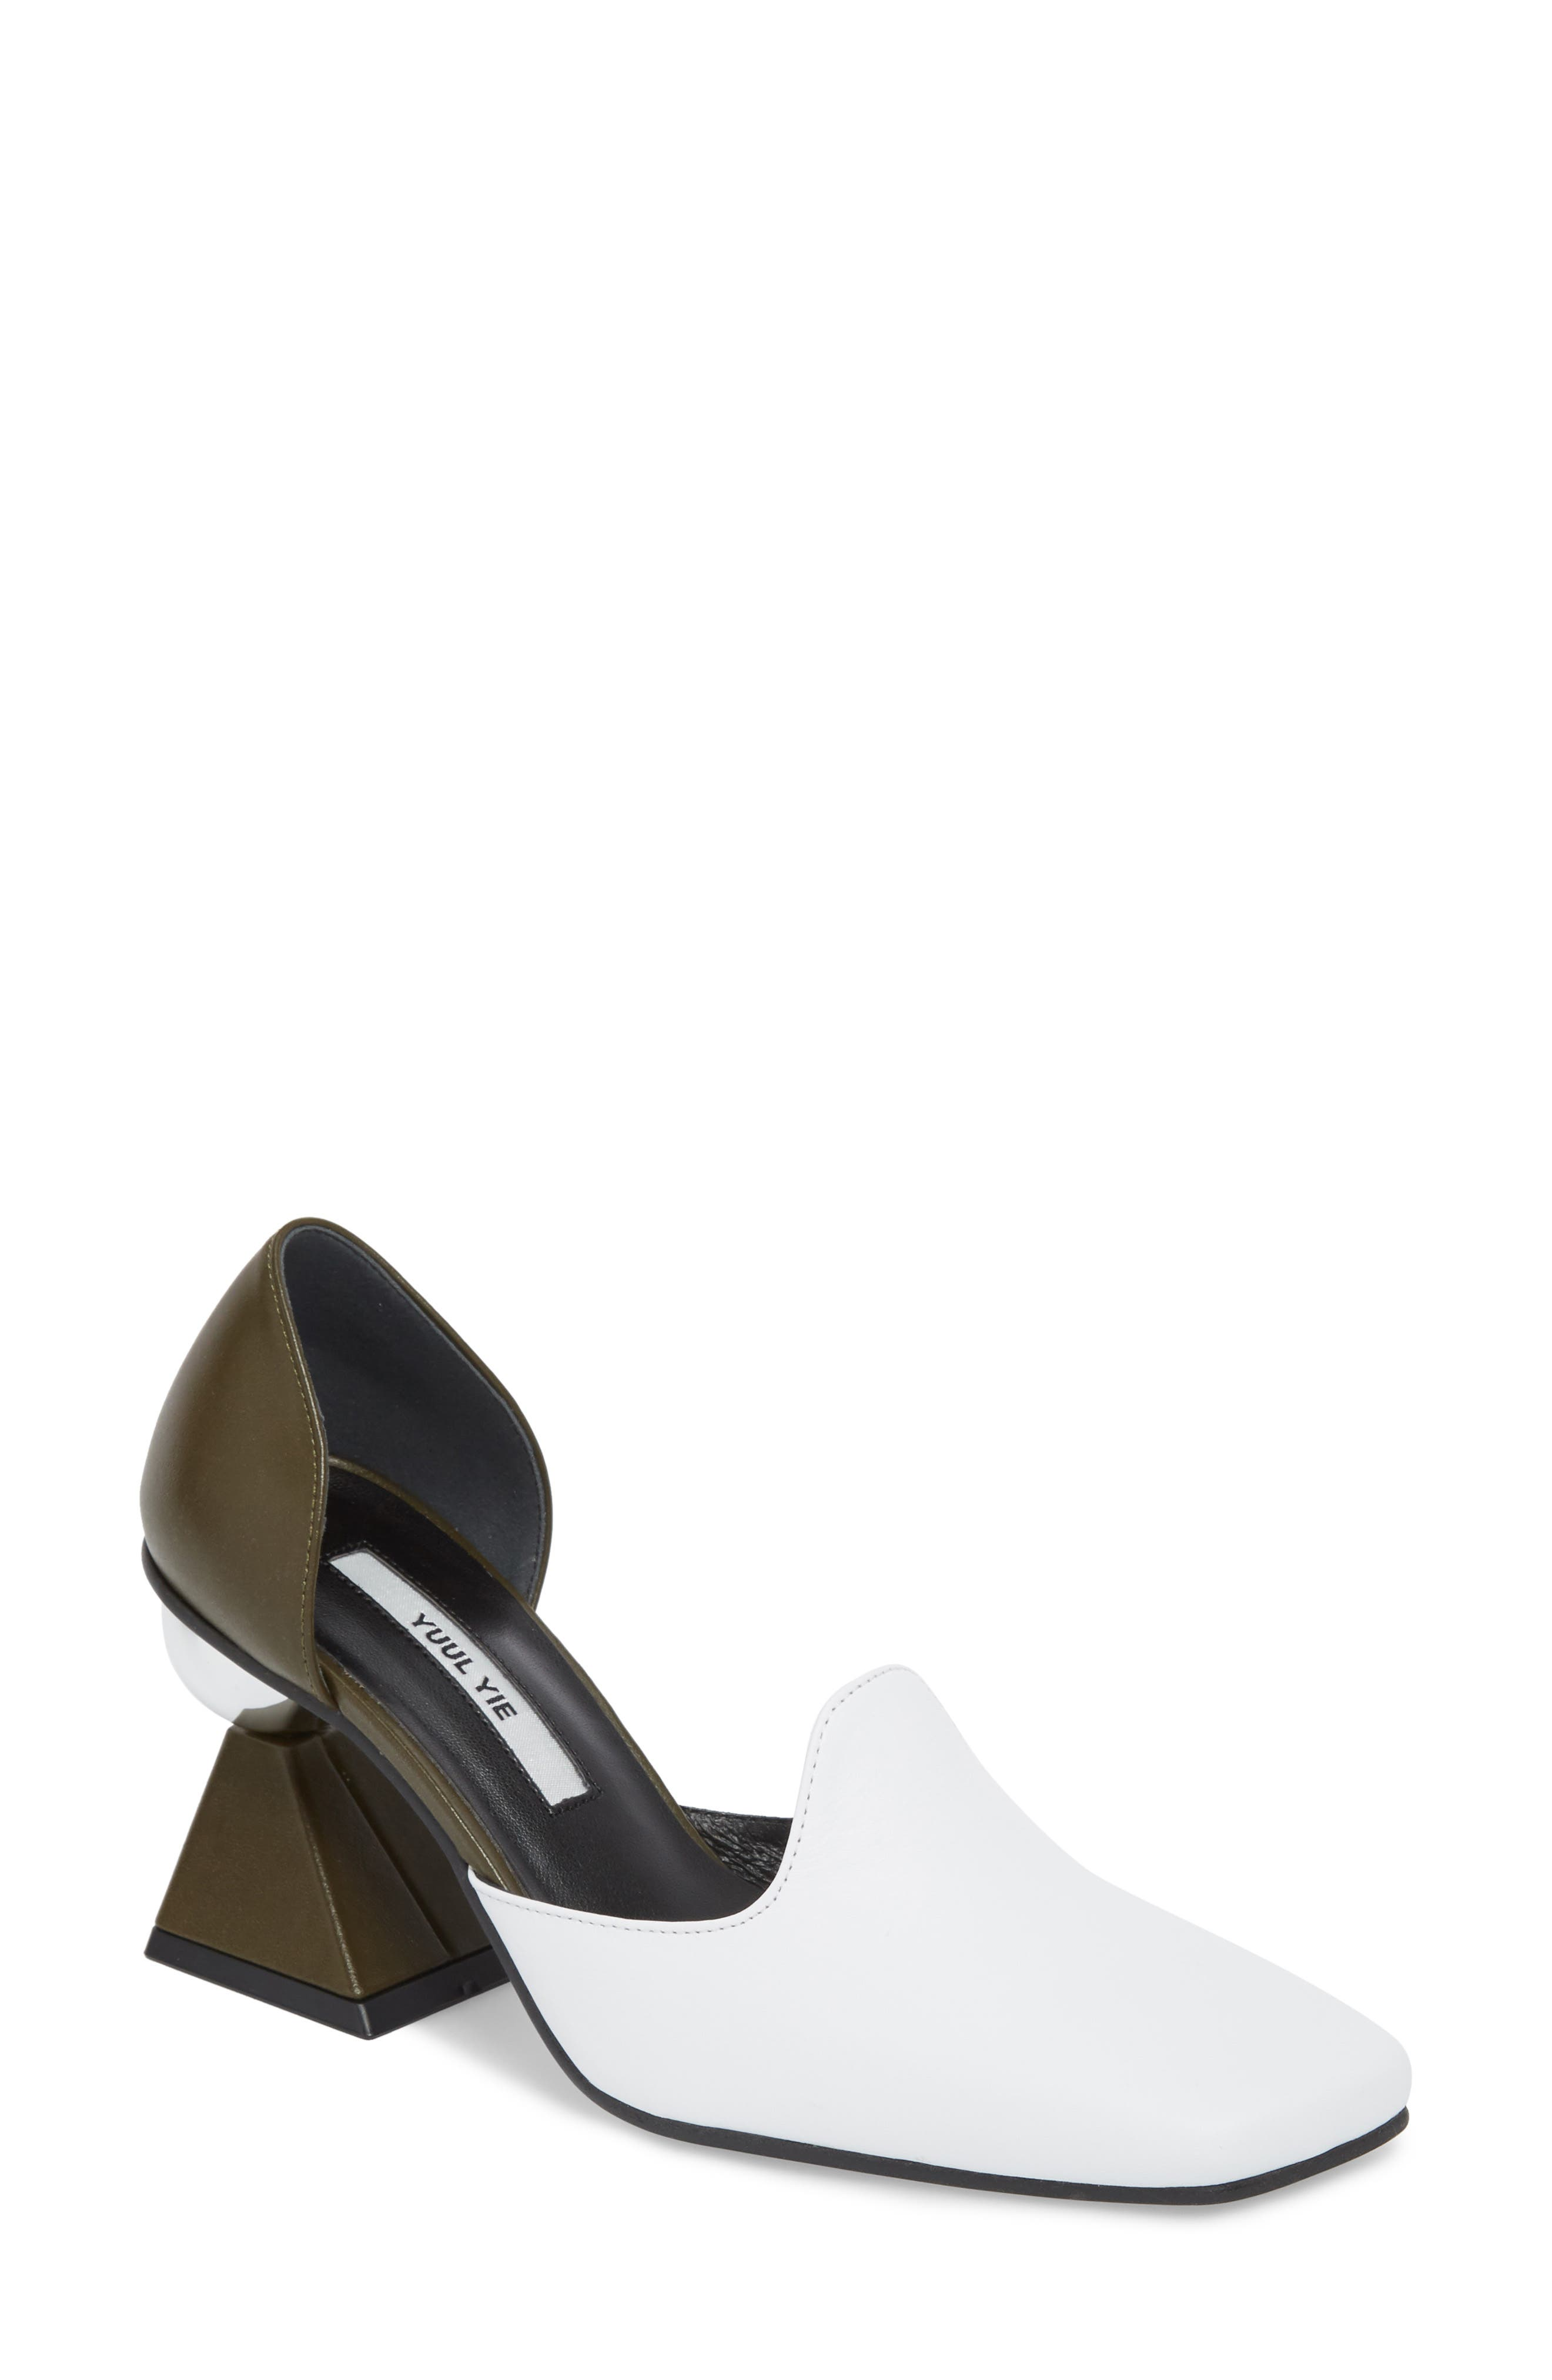 Statement Heel d'Orsay Pump,                         Main,                         color, White/ Olive Green